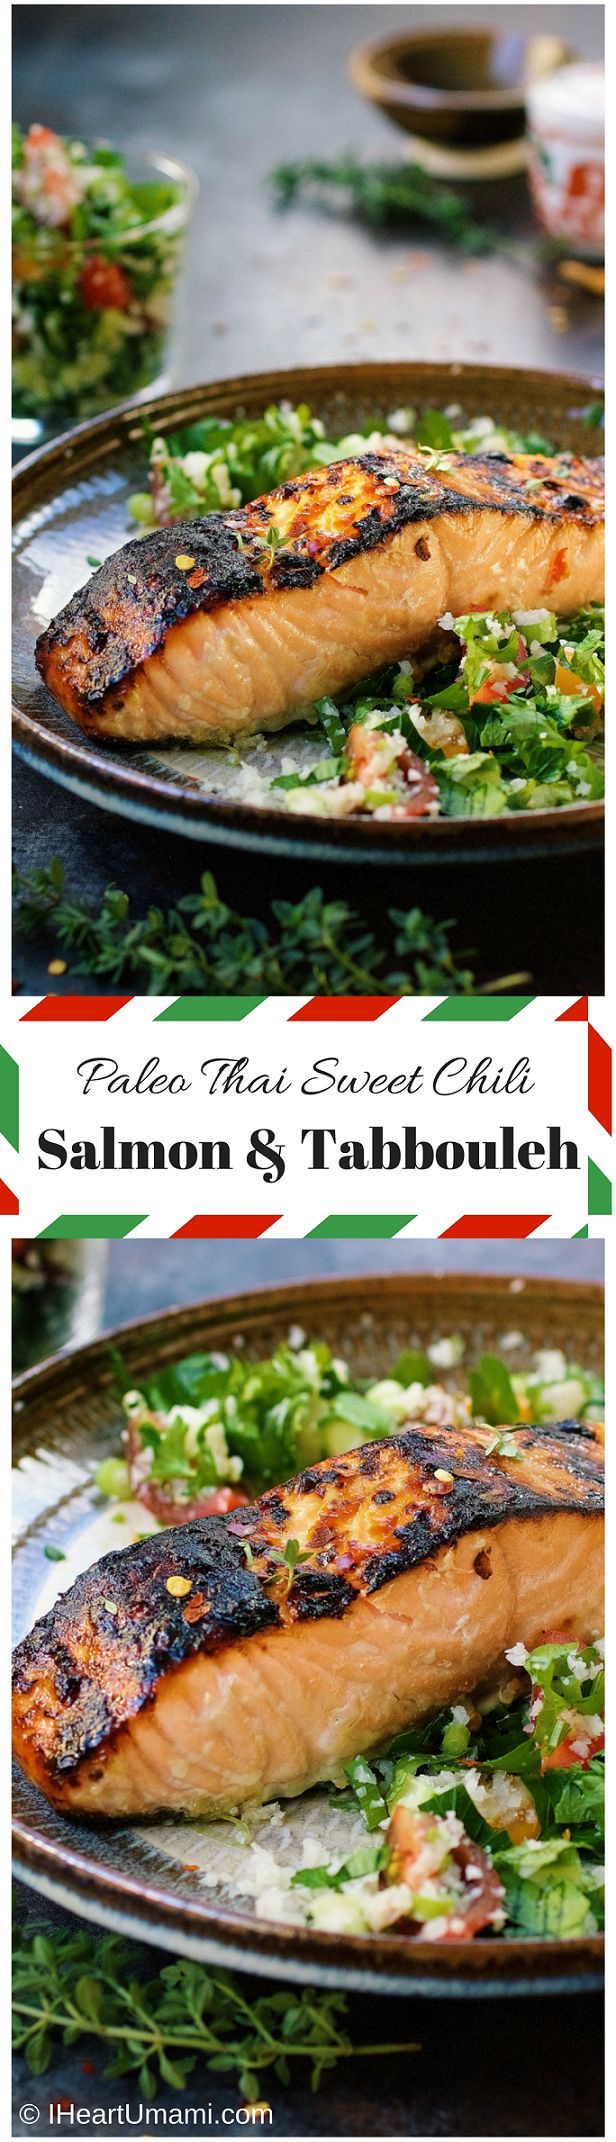 ... sauce. Perfect with grain-free/gluten-free Tabbouleh. IHeartUmami.com